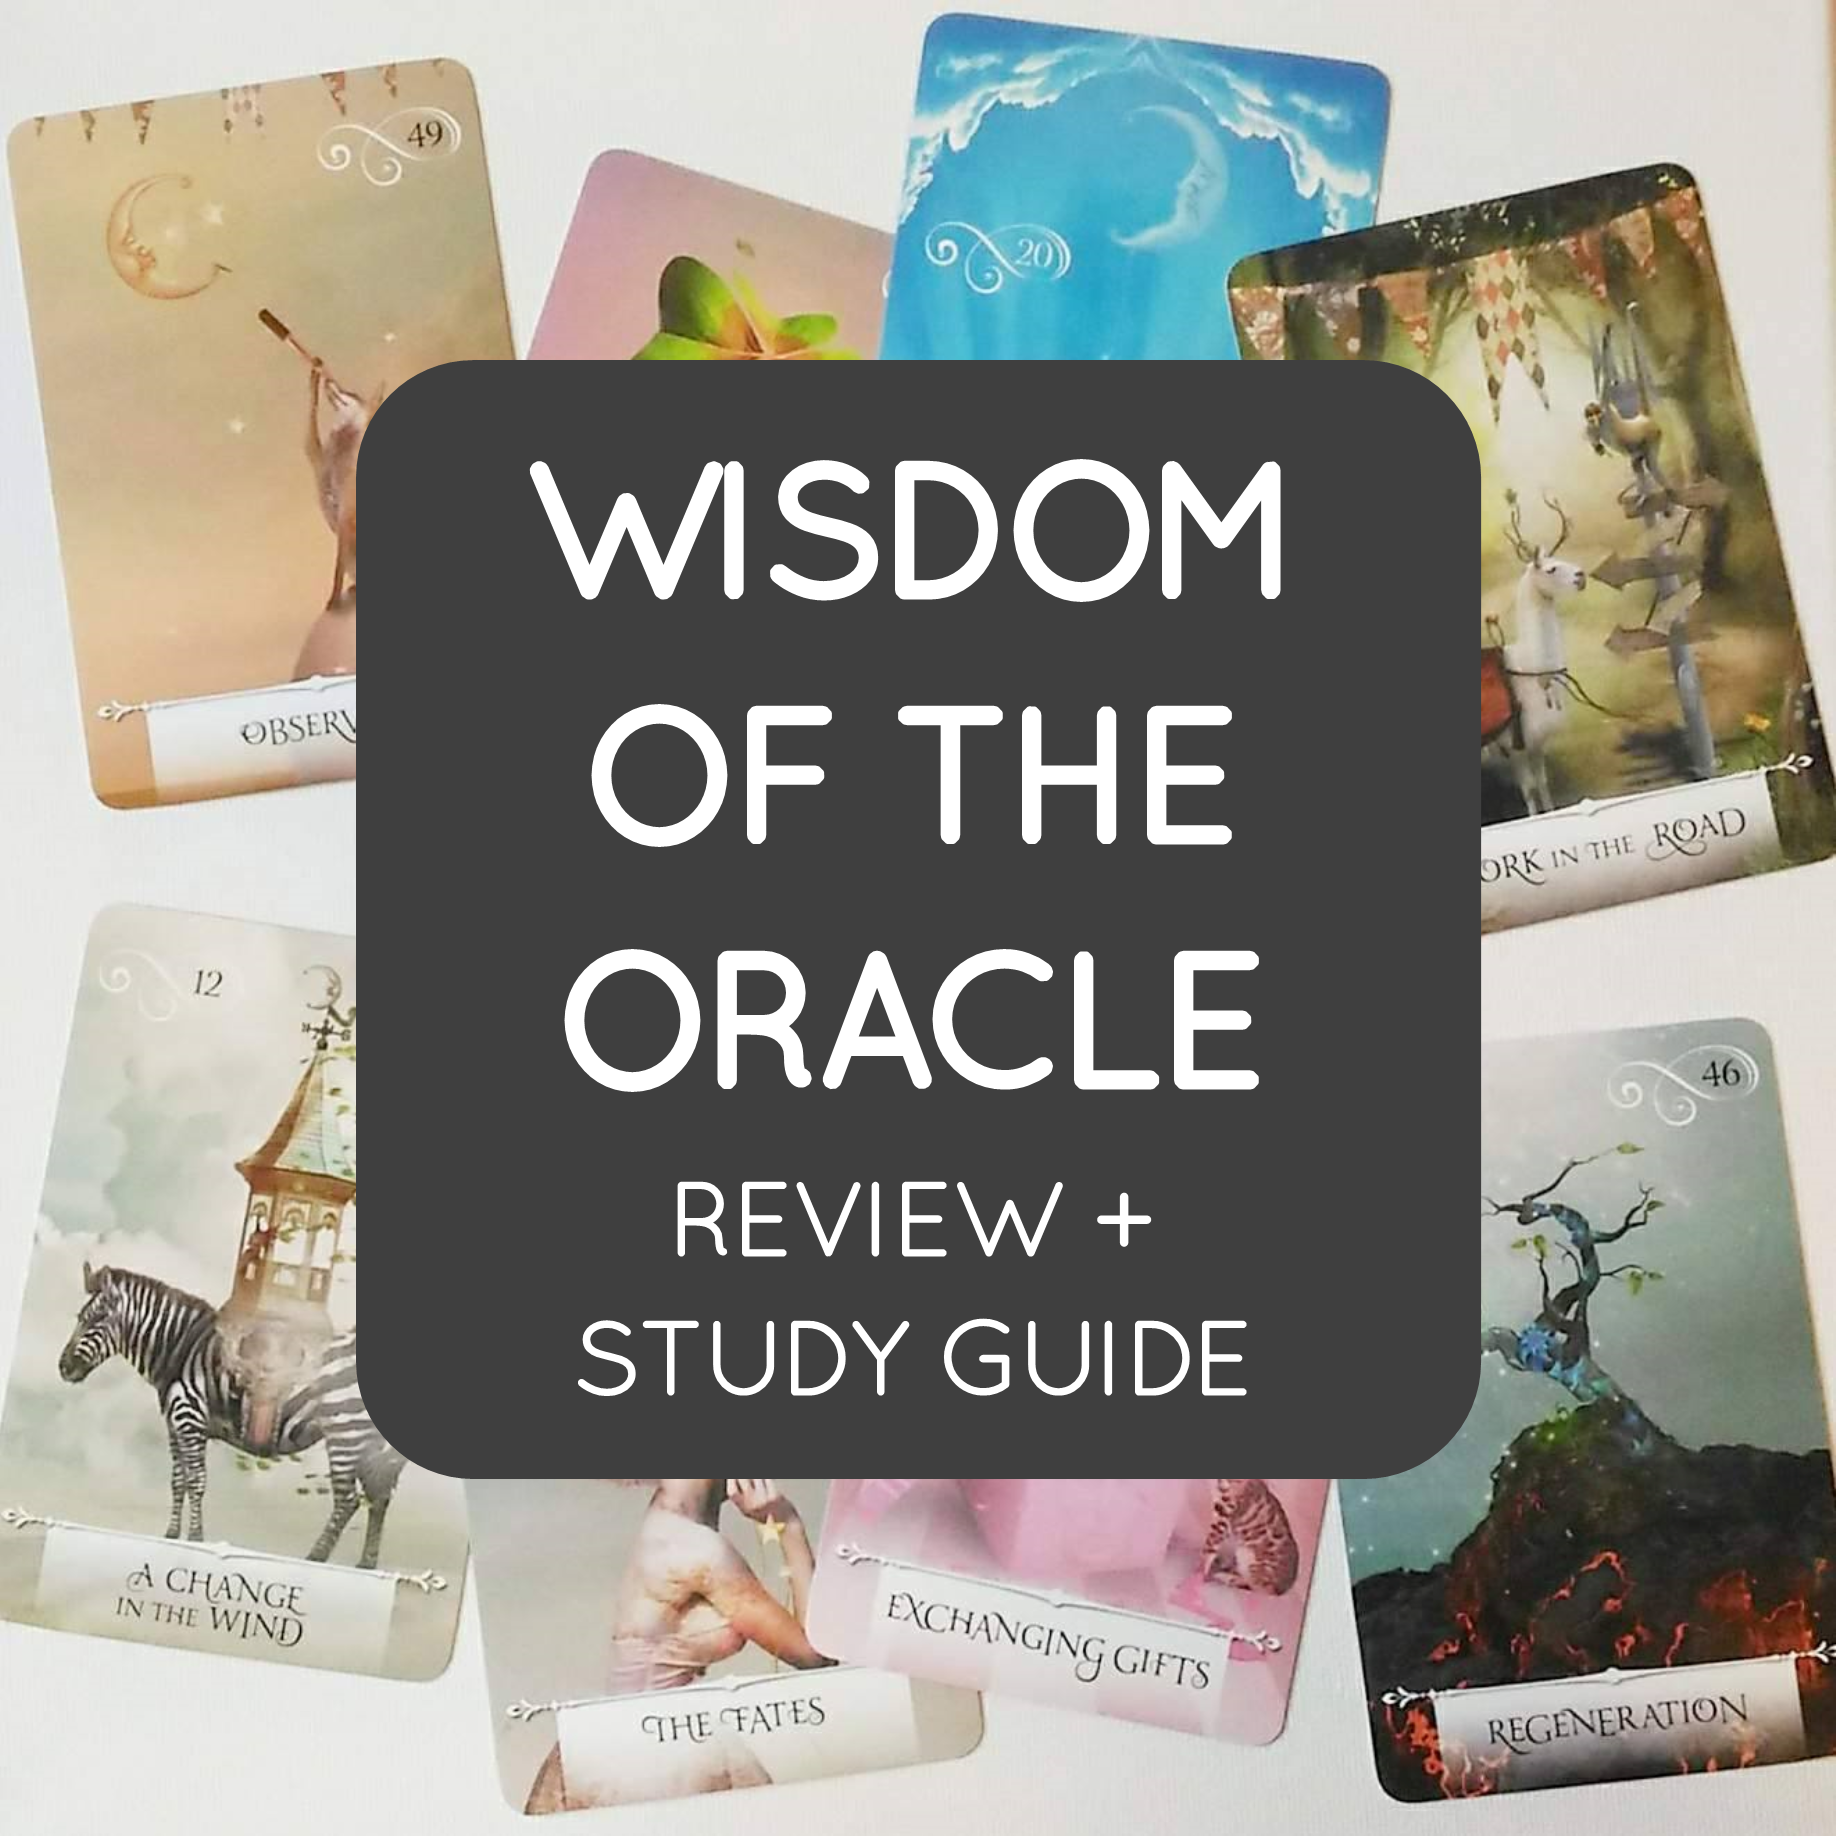 wisdom of the oracle deck review + study guide.png